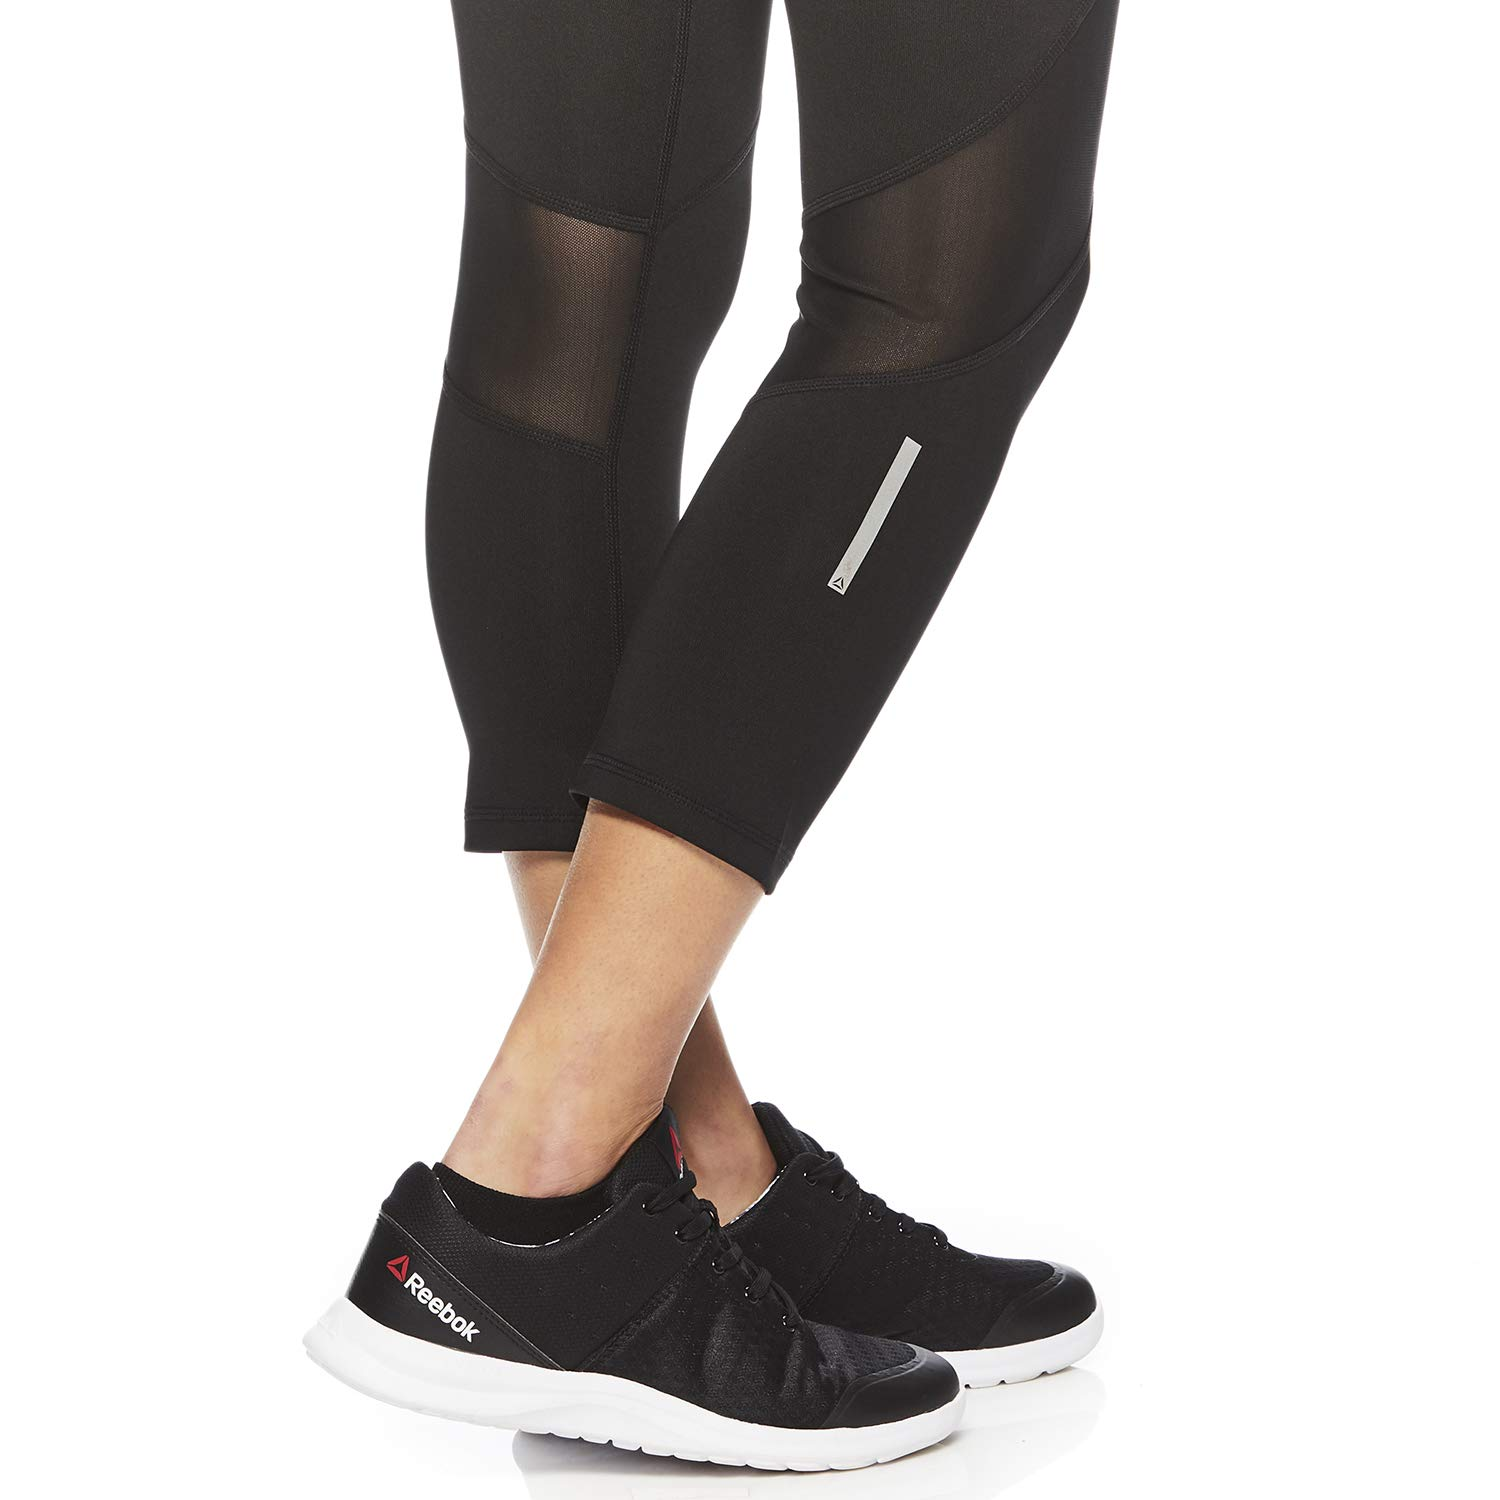 Reebok Womens Printed Capri Leggings With Mid-Rise Waist Performance Compression Tights